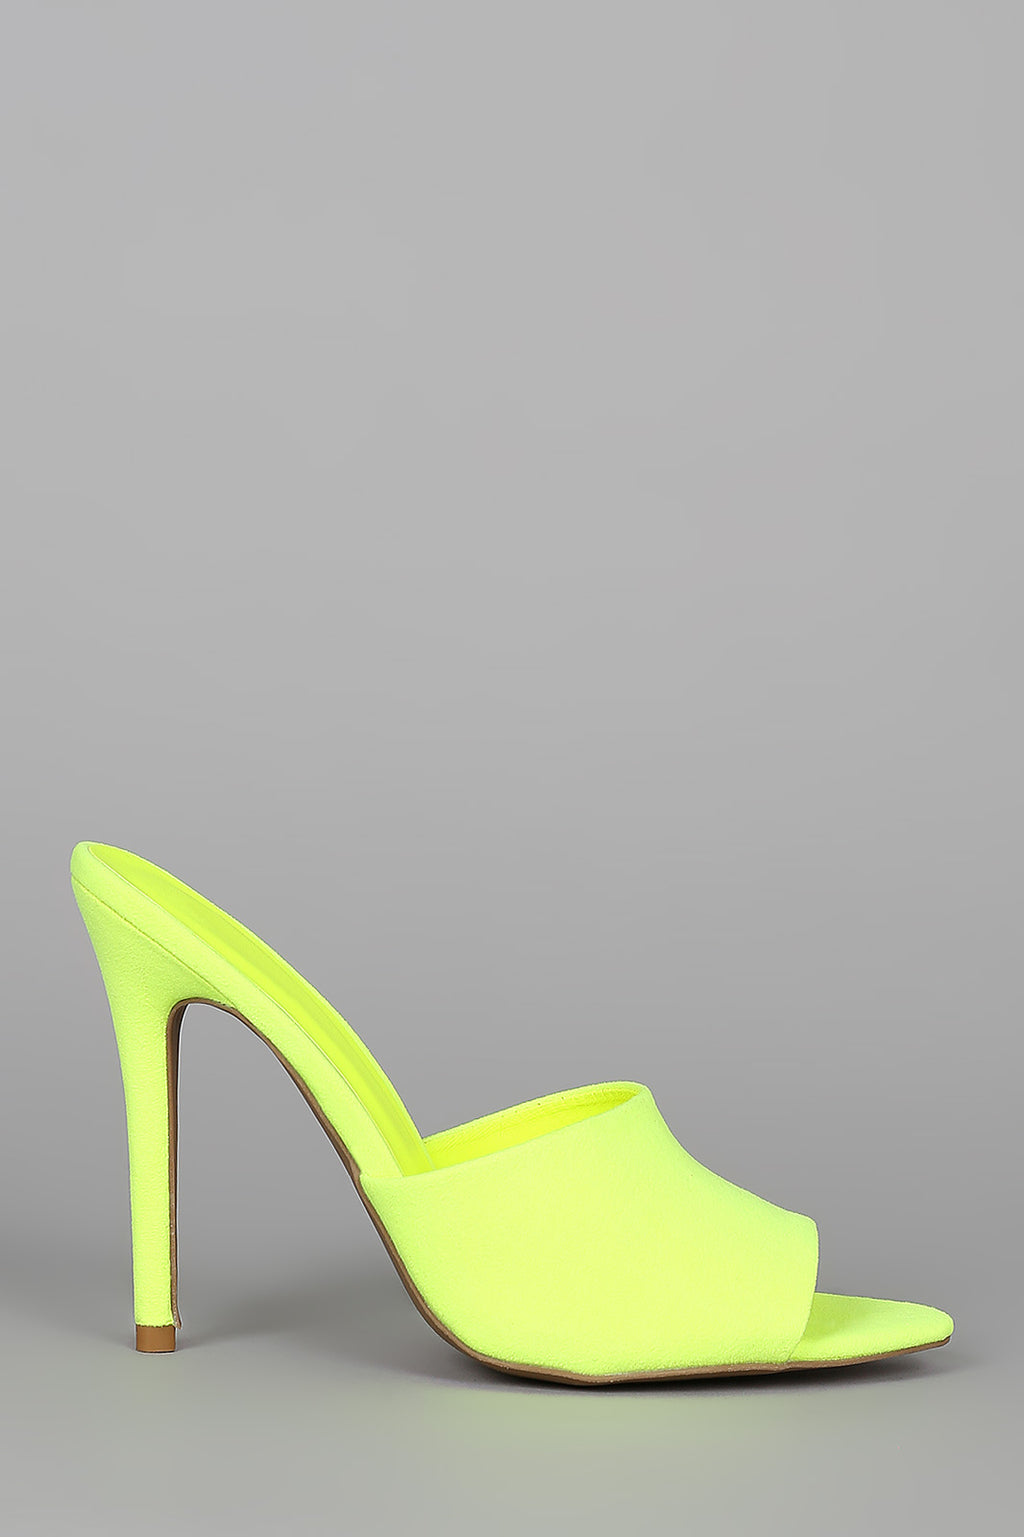 Tease Me - Neon Yellow Stiletto Mule Heels2